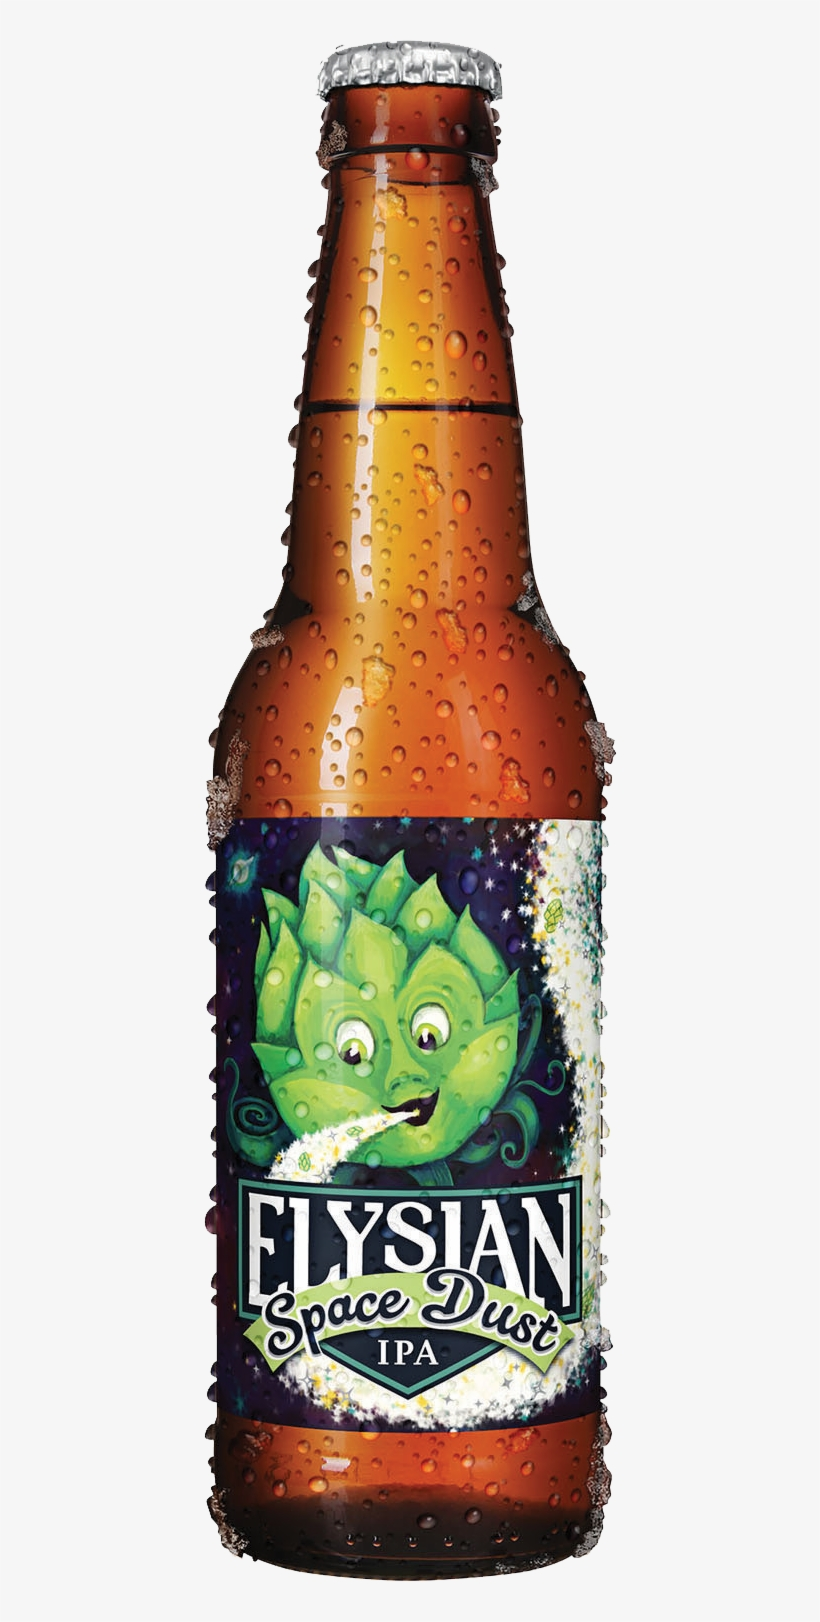 Craft Beers - Elysian Space Dust 22oz, transparent png #3793034